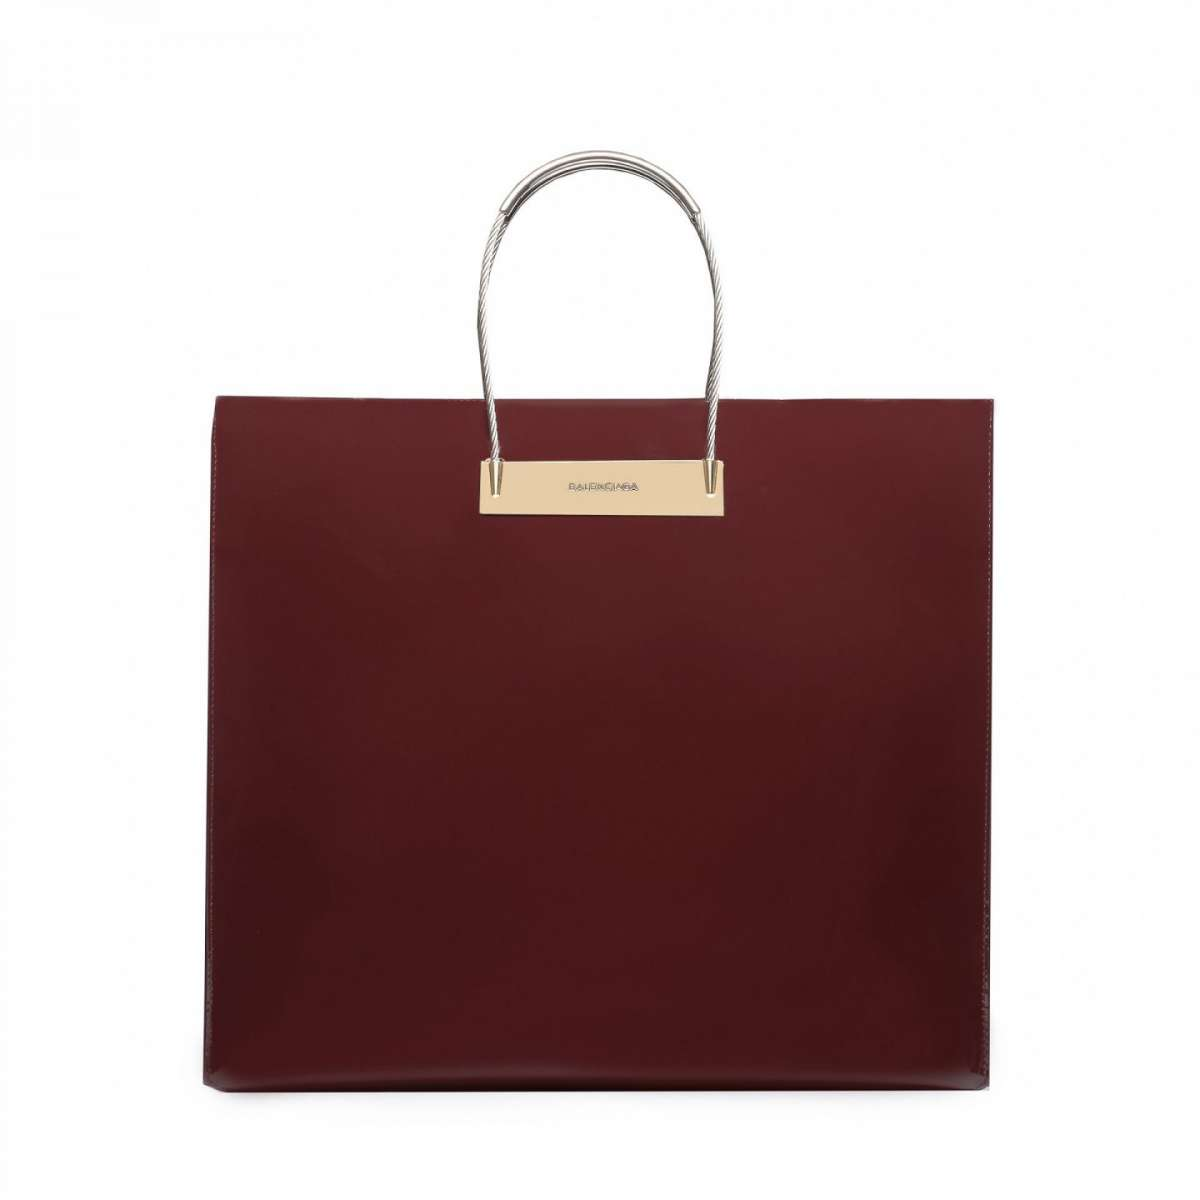 Cable shopper Balenciaga burgundy